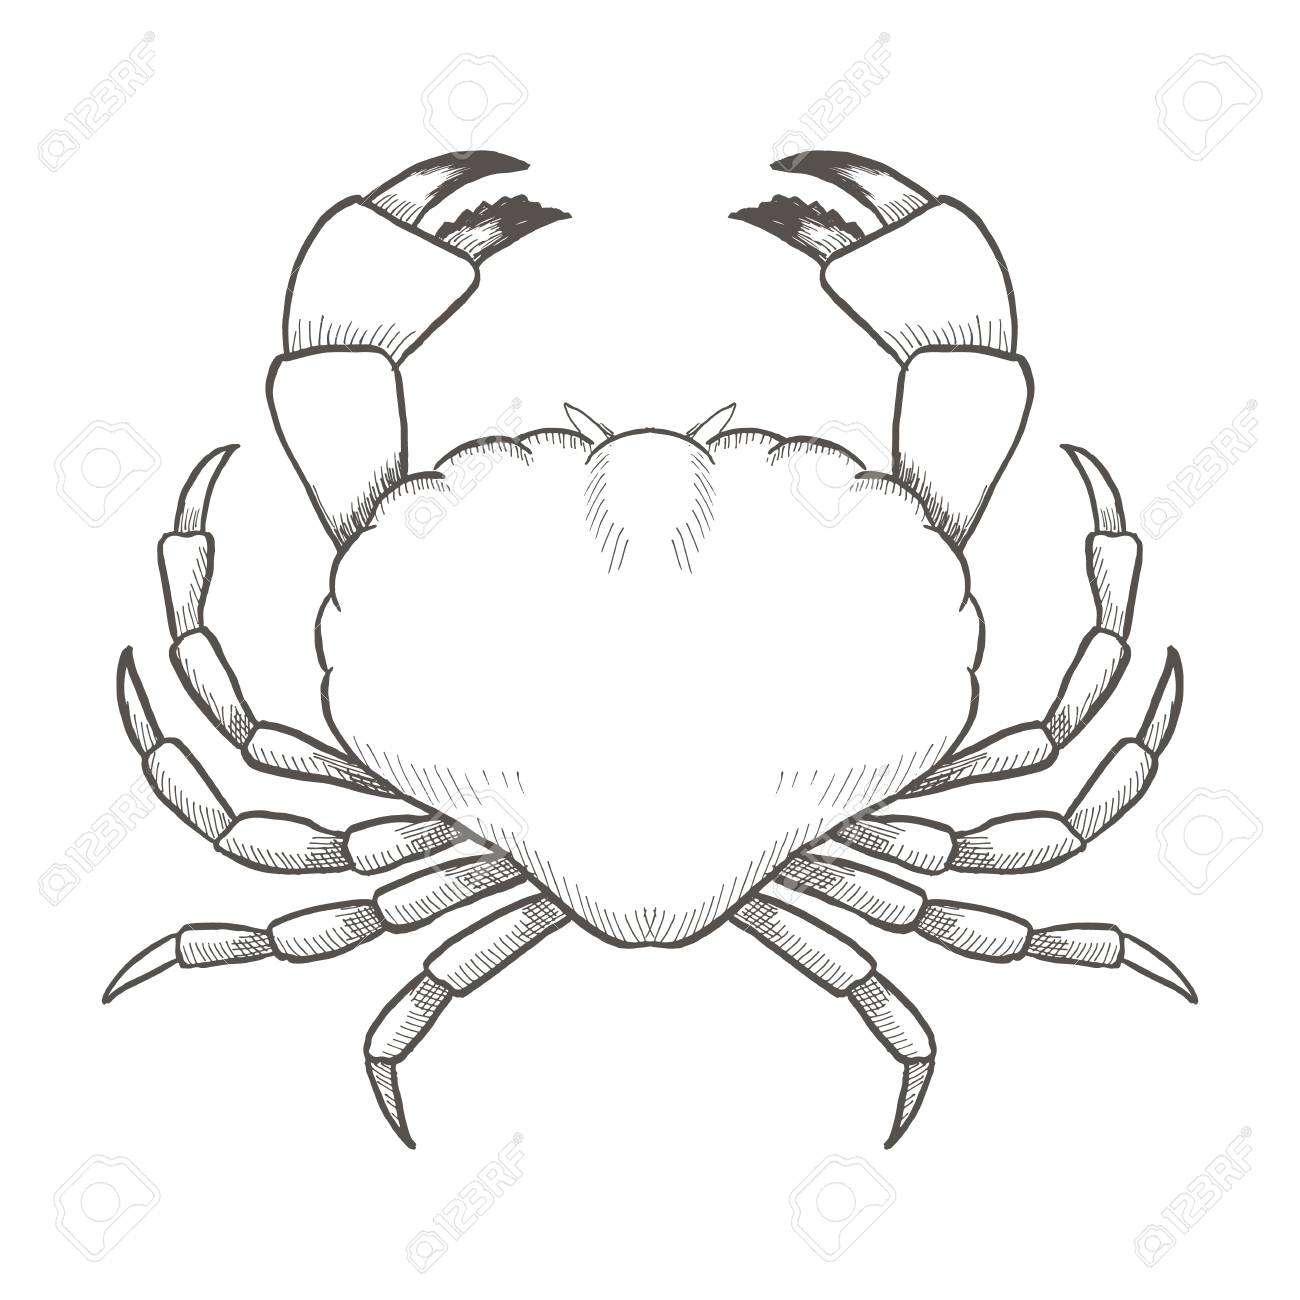 Crab Drawing On White Background Hand Drawn Outline Vintage 1300x1300